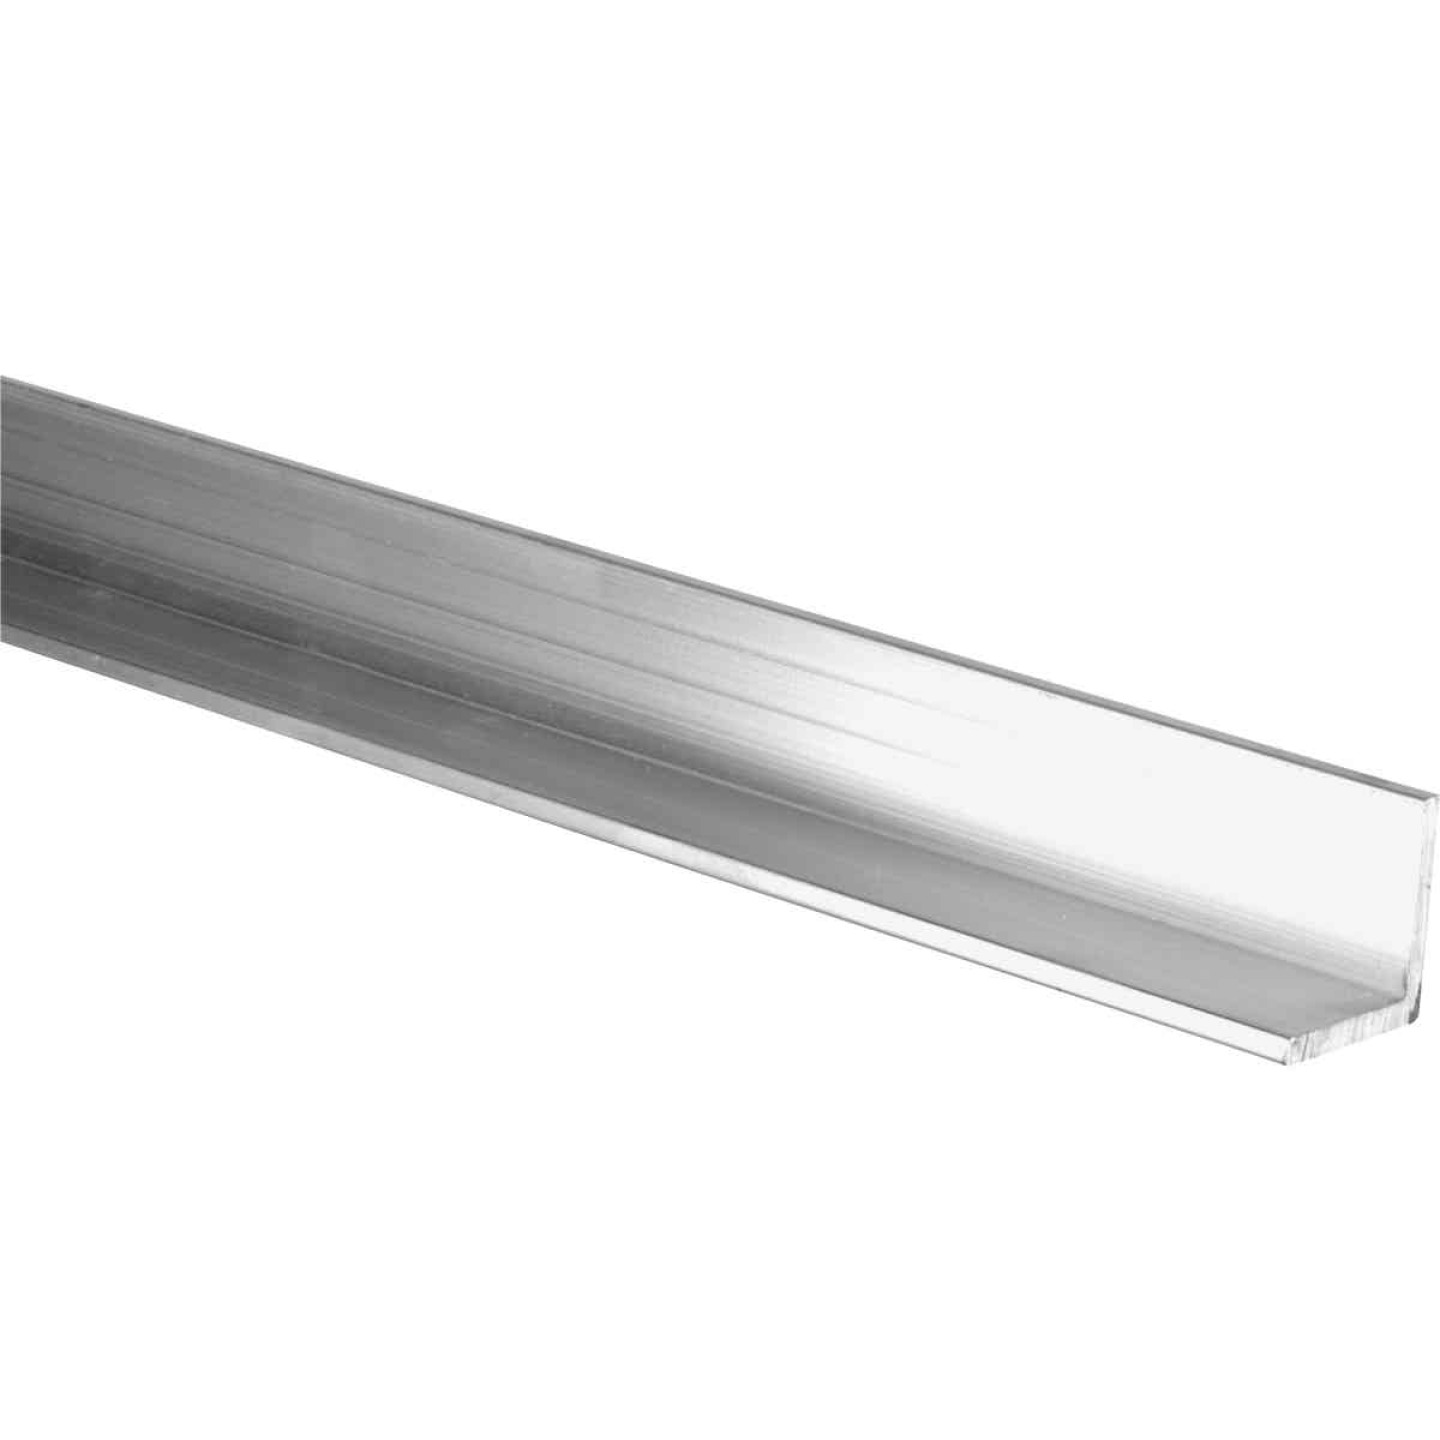 HILLMAN Steelworks Mill 3/4 In. x 6 Ft., 1/16 In. Aluminum Solid Angle Image 1